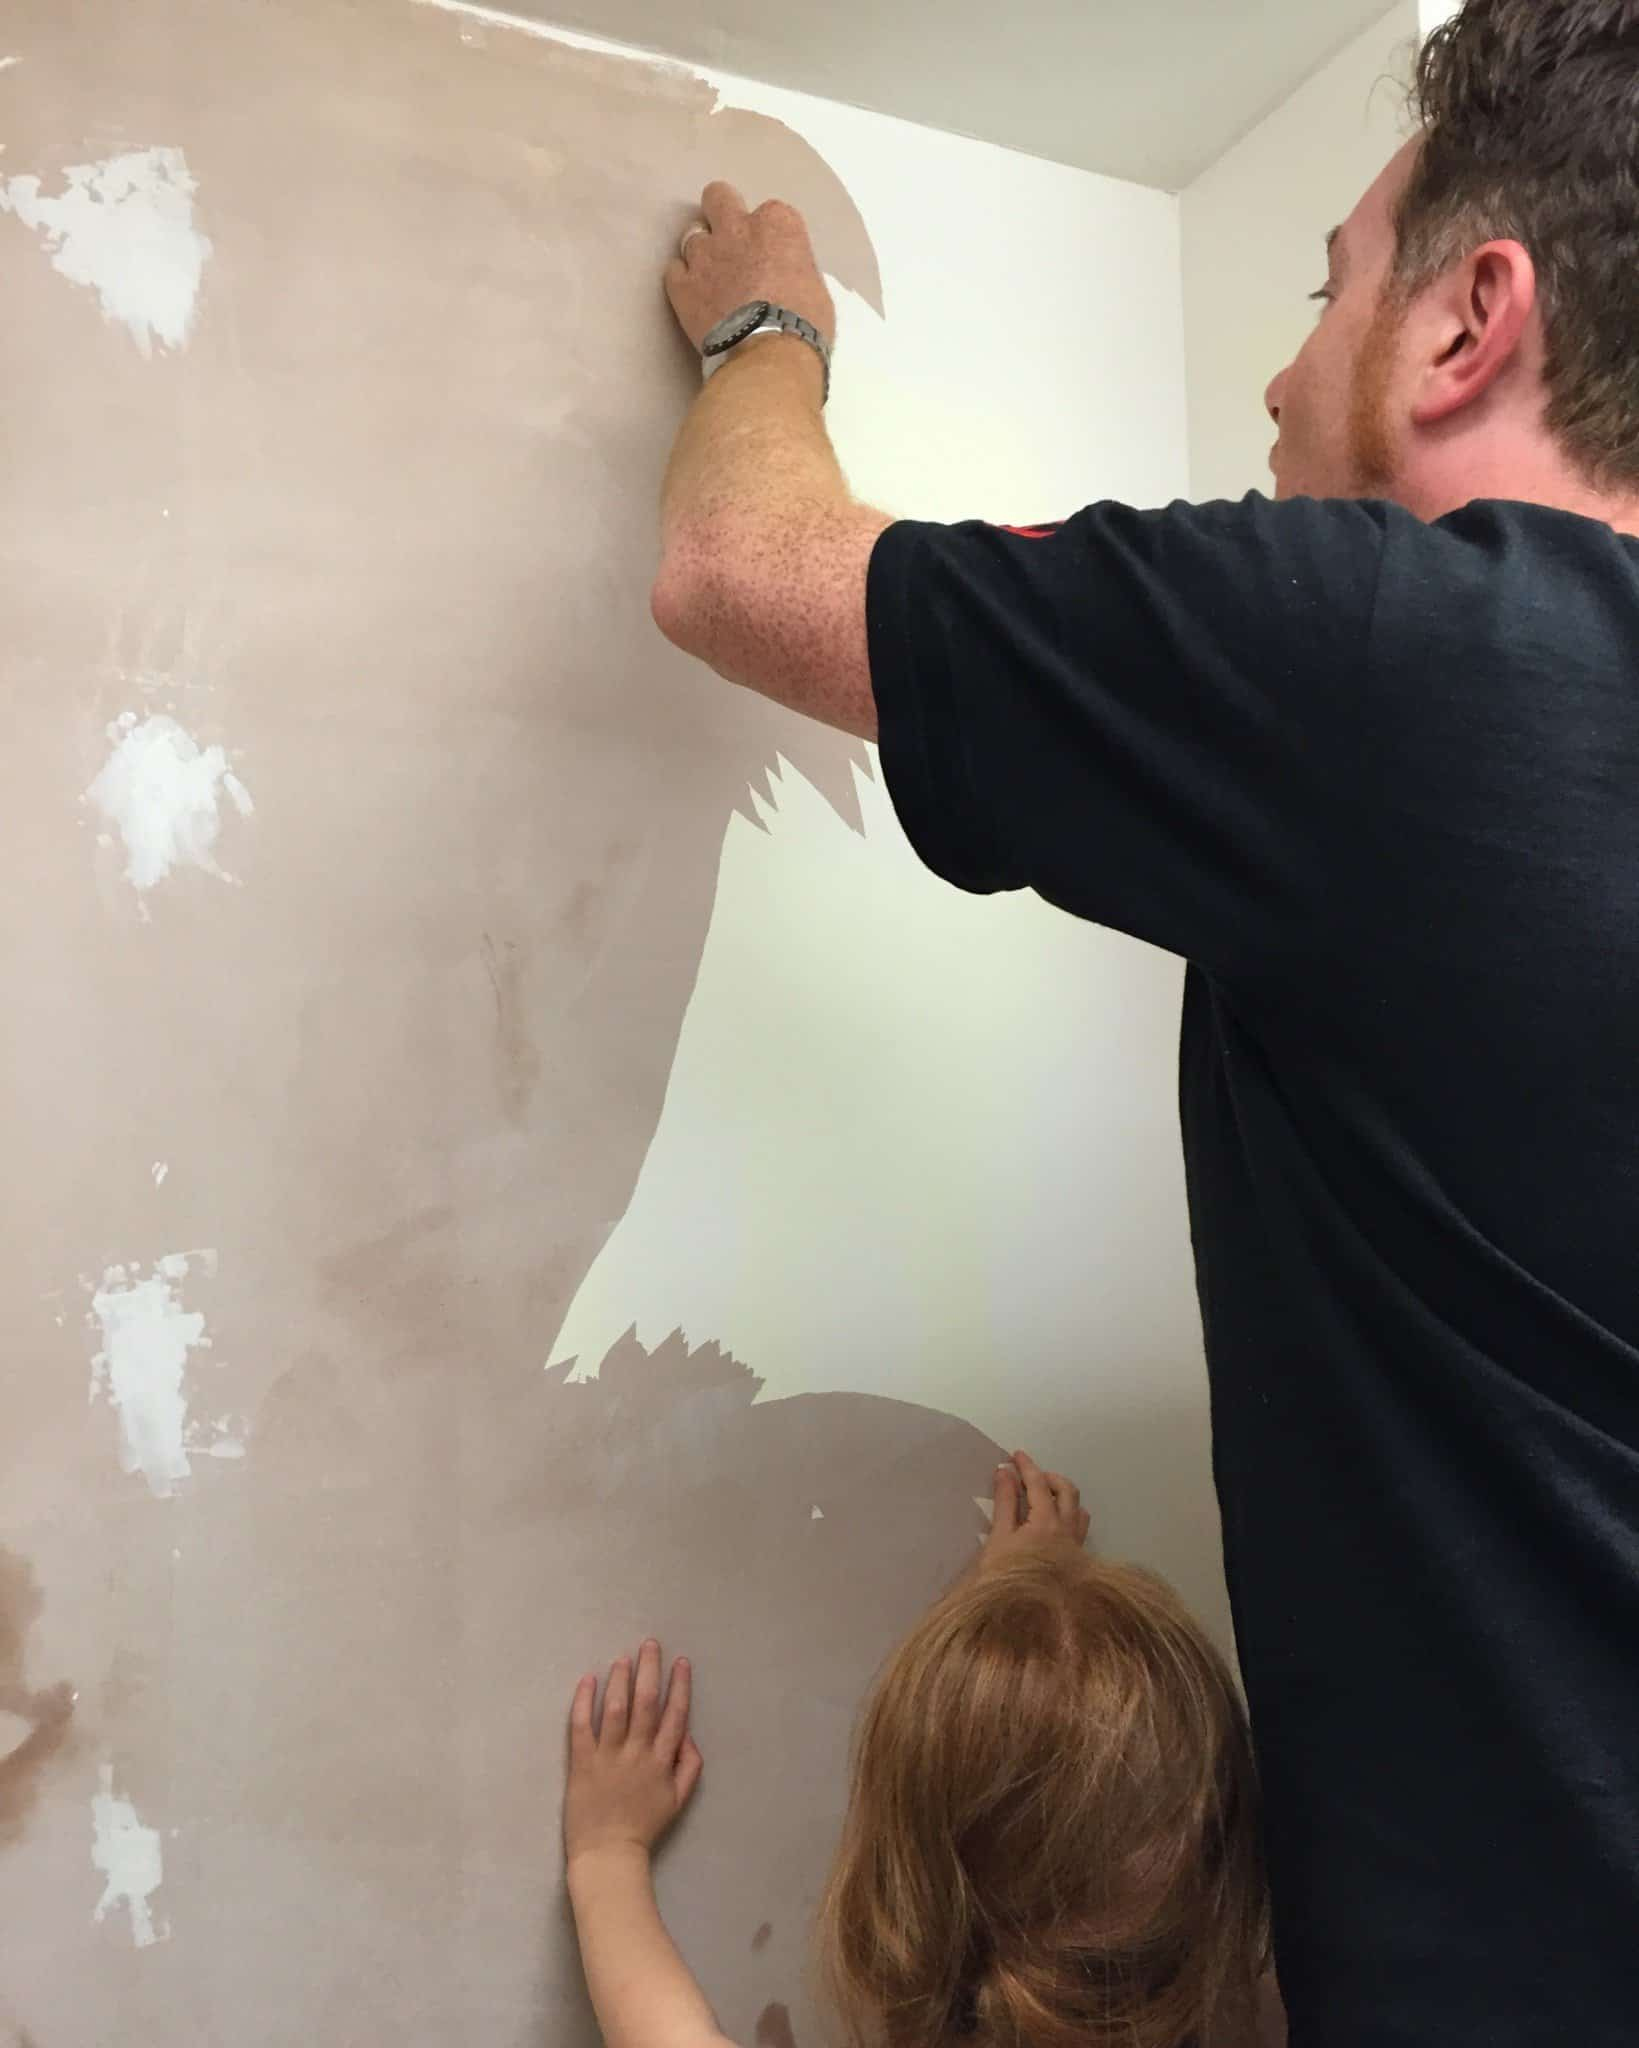 Ryan and Ava peeling old paint off the utility room wall